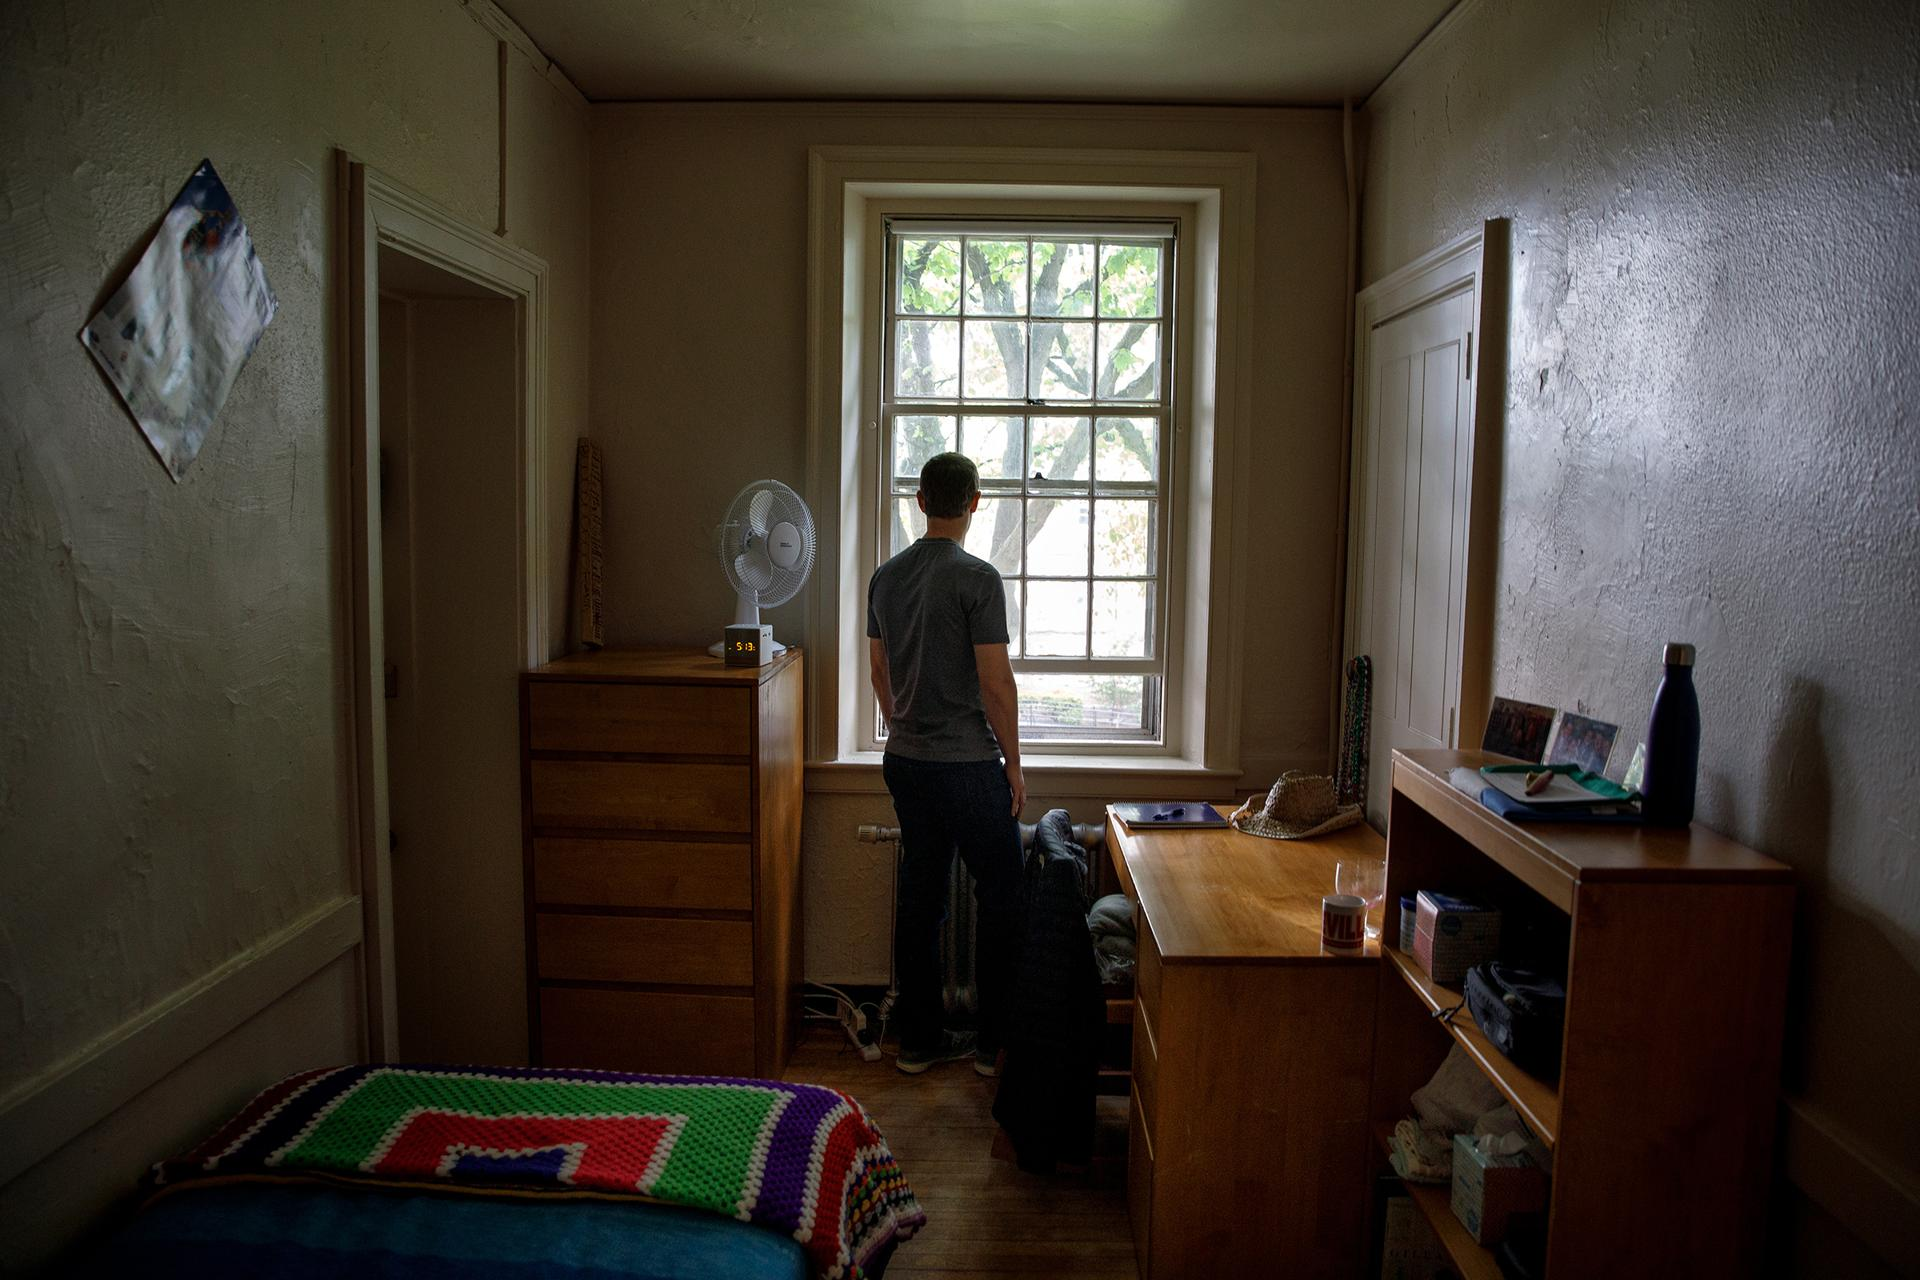 In this Tuesday, May 23, 2017, photo, provided by Facebook, CEO Mark Zuckerberg looks out the window in his old dorm room at Harvard University, in Cambridge, Mass. Zuckerberg started Facebook in his dorm room in 2004, and also met his wife, Priscilla Chan, at Harvard. On Thursday, May 25, Zuckerberg will give the commencement address at the university, where he dropped out 12 years earlier to focus on Facebook. (Courtesy of Facebook via AP)